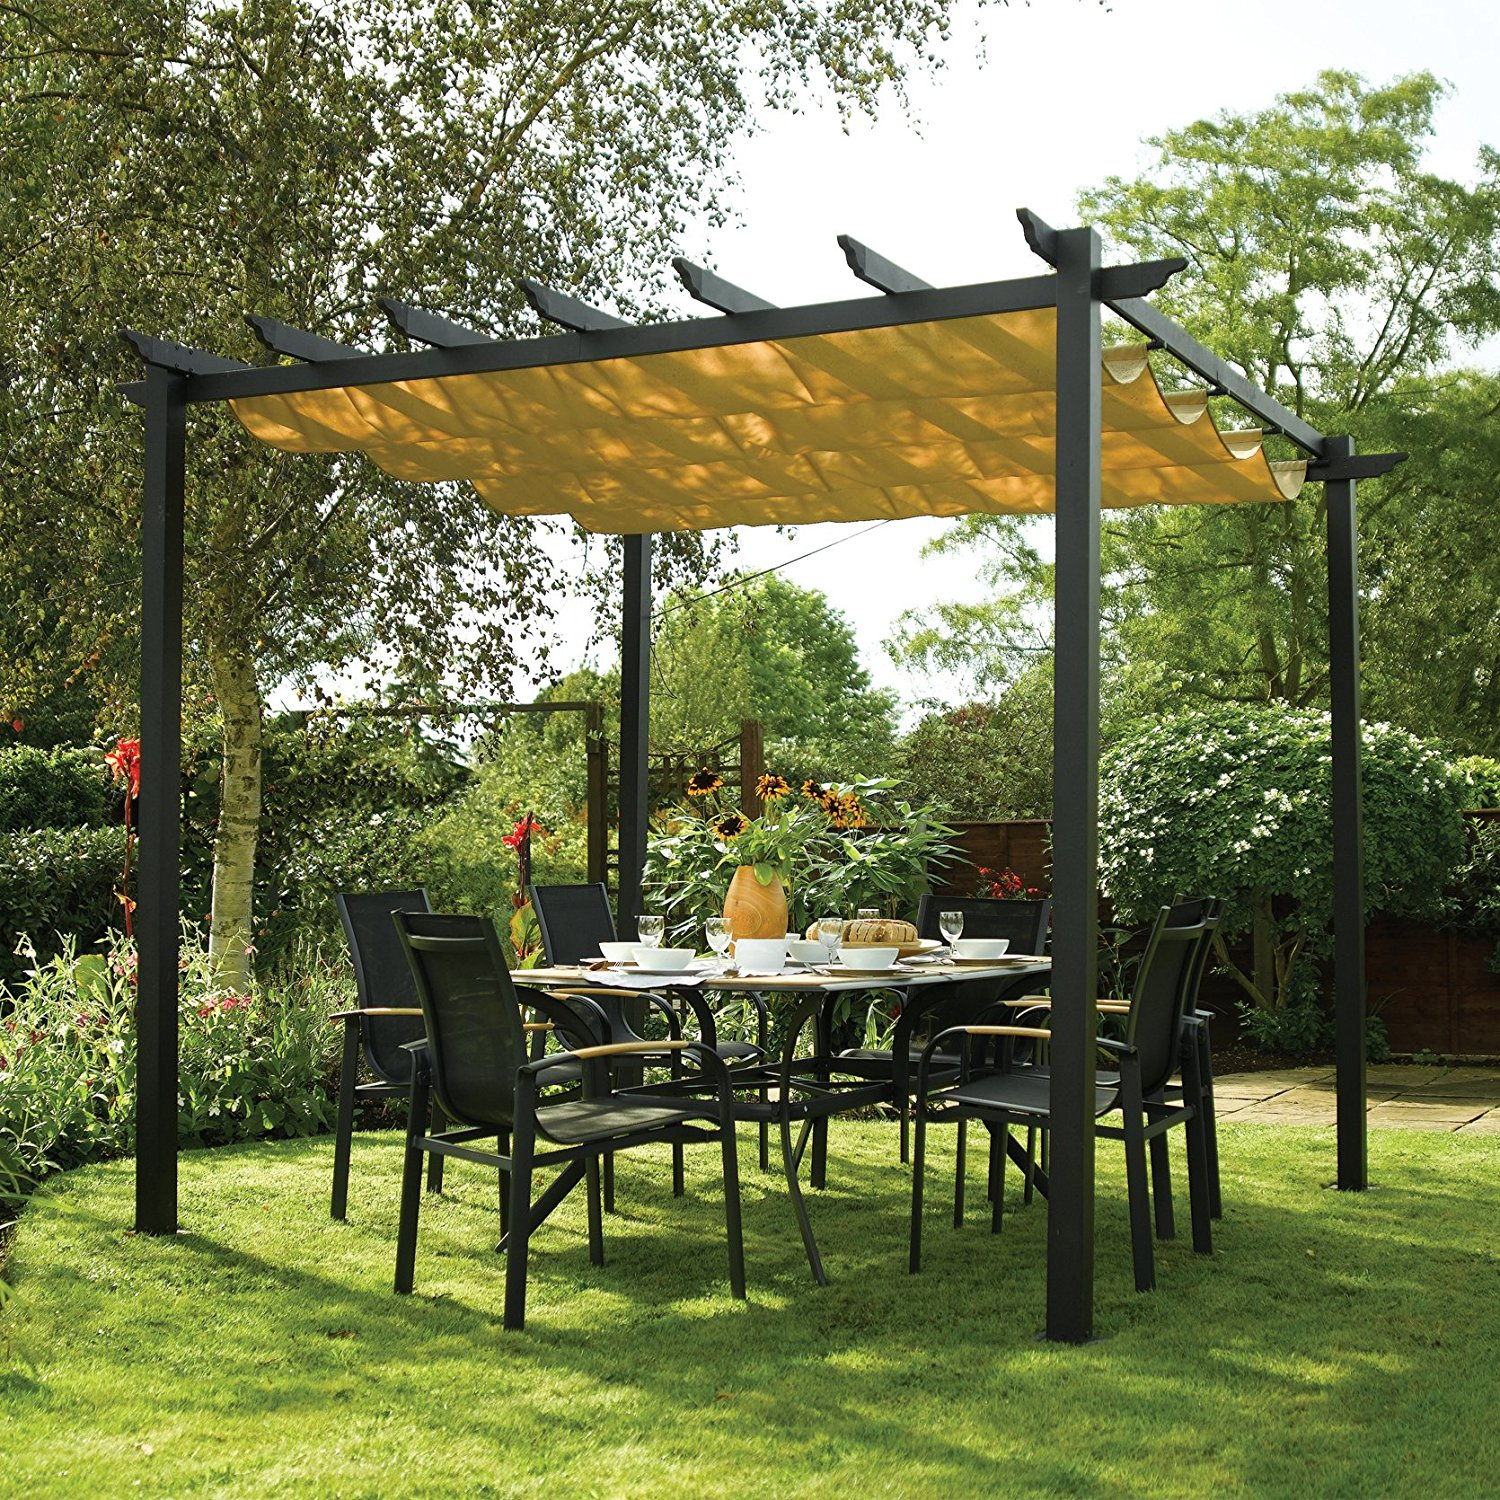 Aluminum Pergola Kits, Steel Pergola Kits. The Best Metal